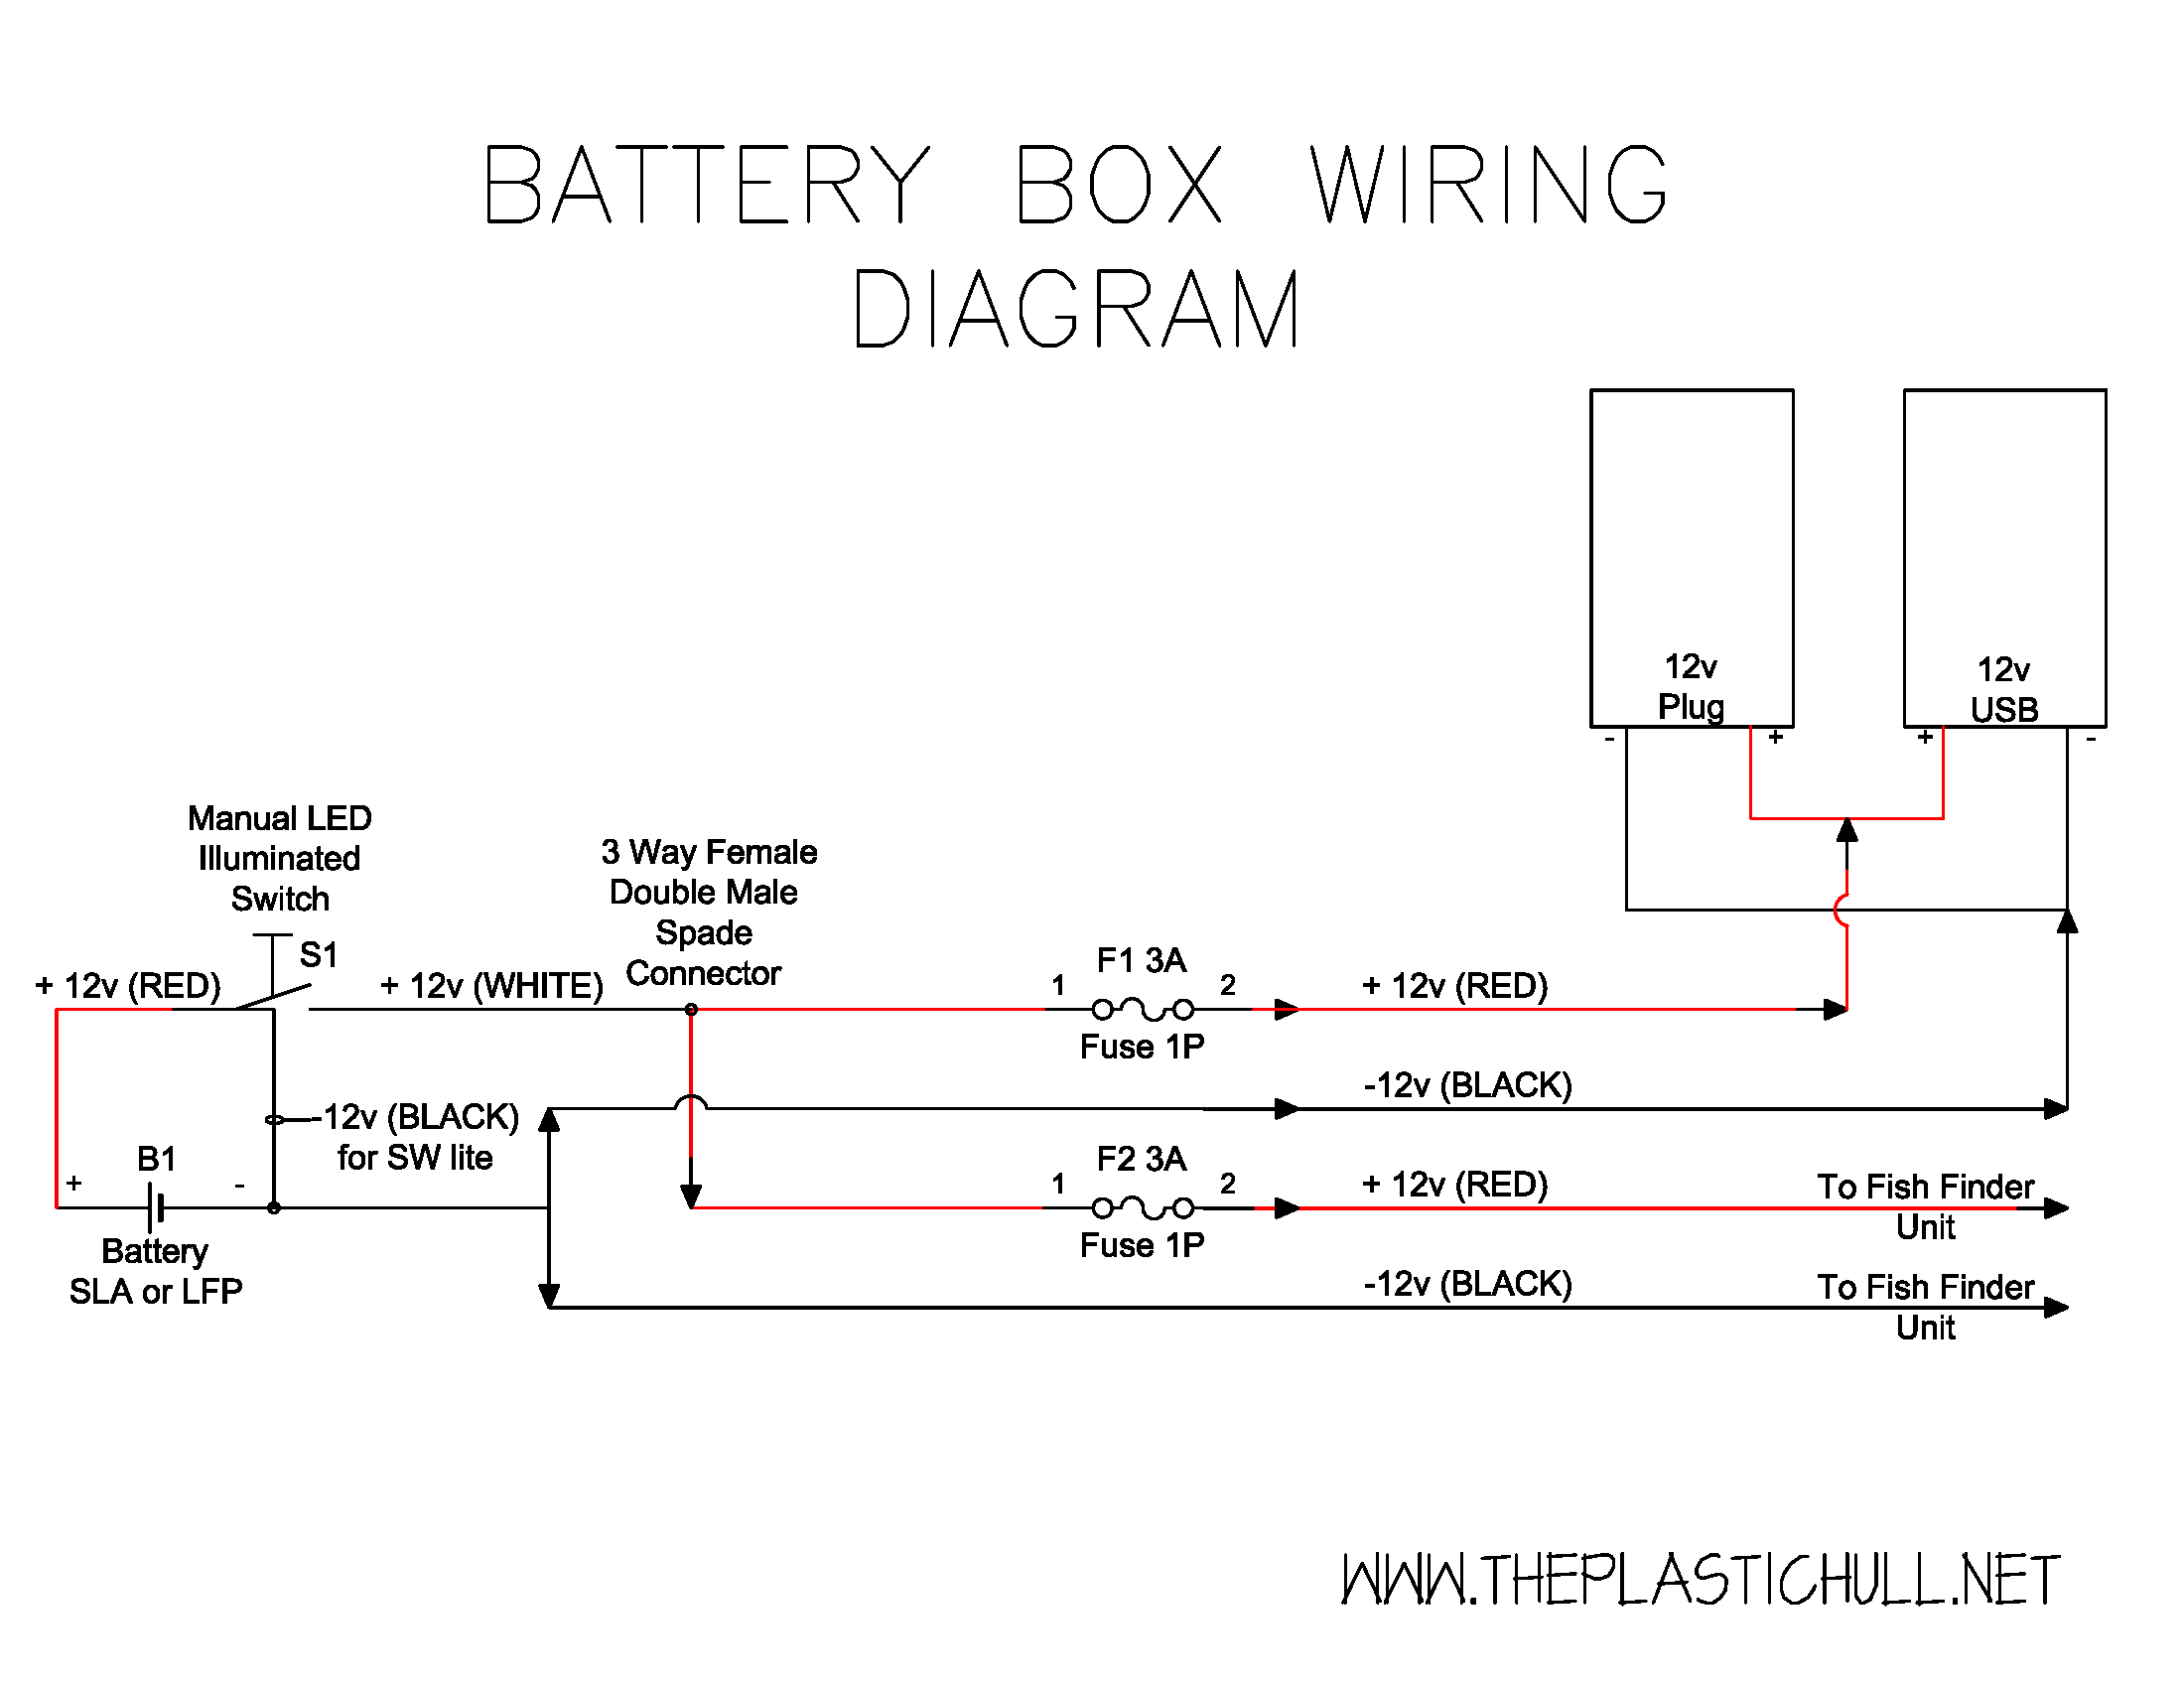 Wiring Diagram 8X11?resize=600%2C464 waterproof kayak battery box mods & upgrades the plastic hull solar battery box wiring diagram at panicattacktreatment.co